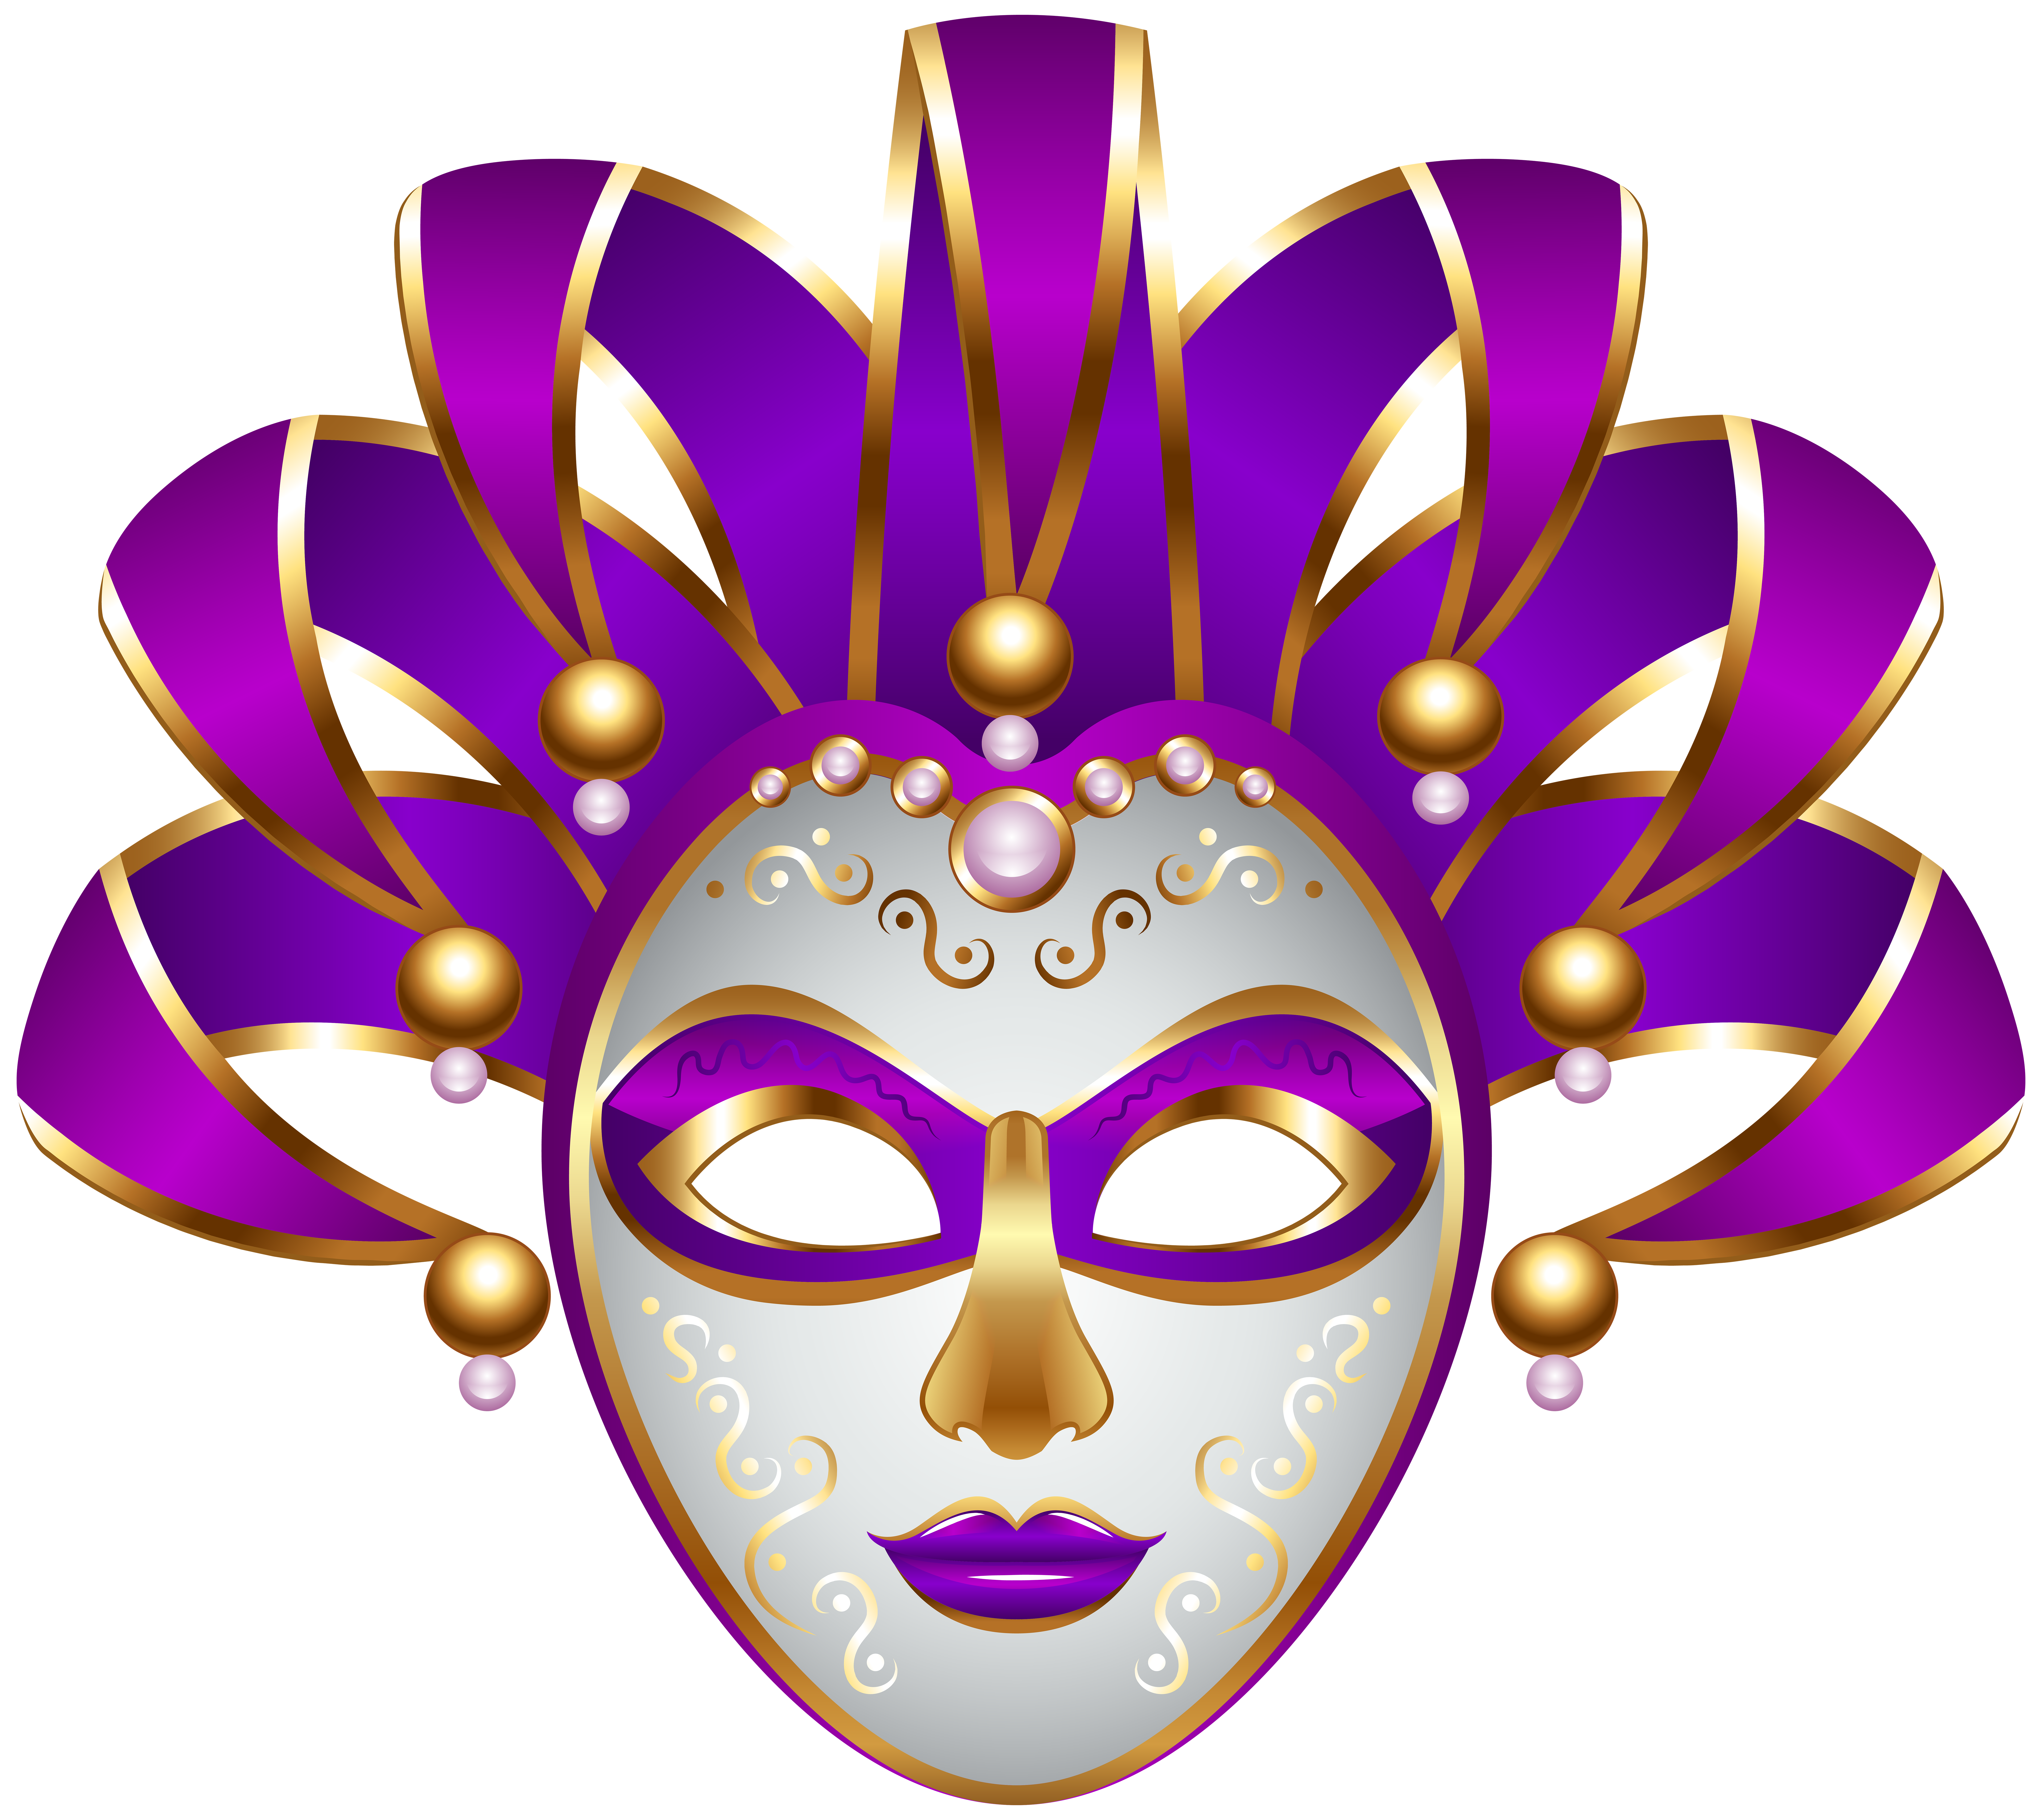 Mardis gras crown clipart banner stock 28+ Collection of Mask Clipart Png | High quality, free cliparts ... banner stock